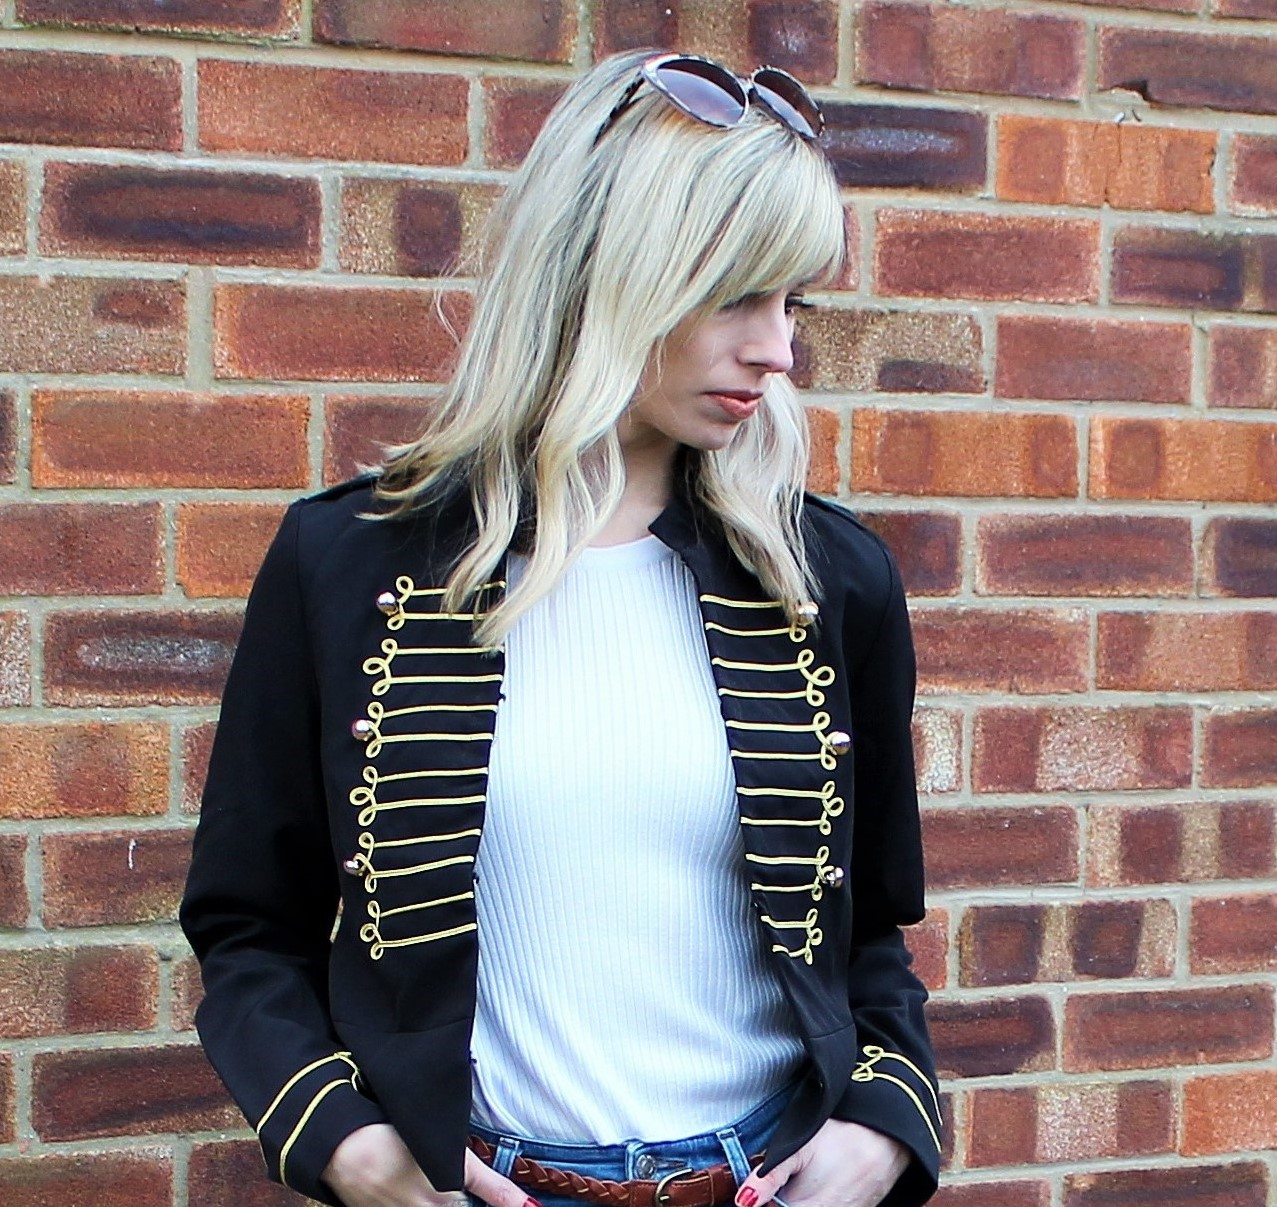 OOTD featuring a cropped military jacket from Shein - 1